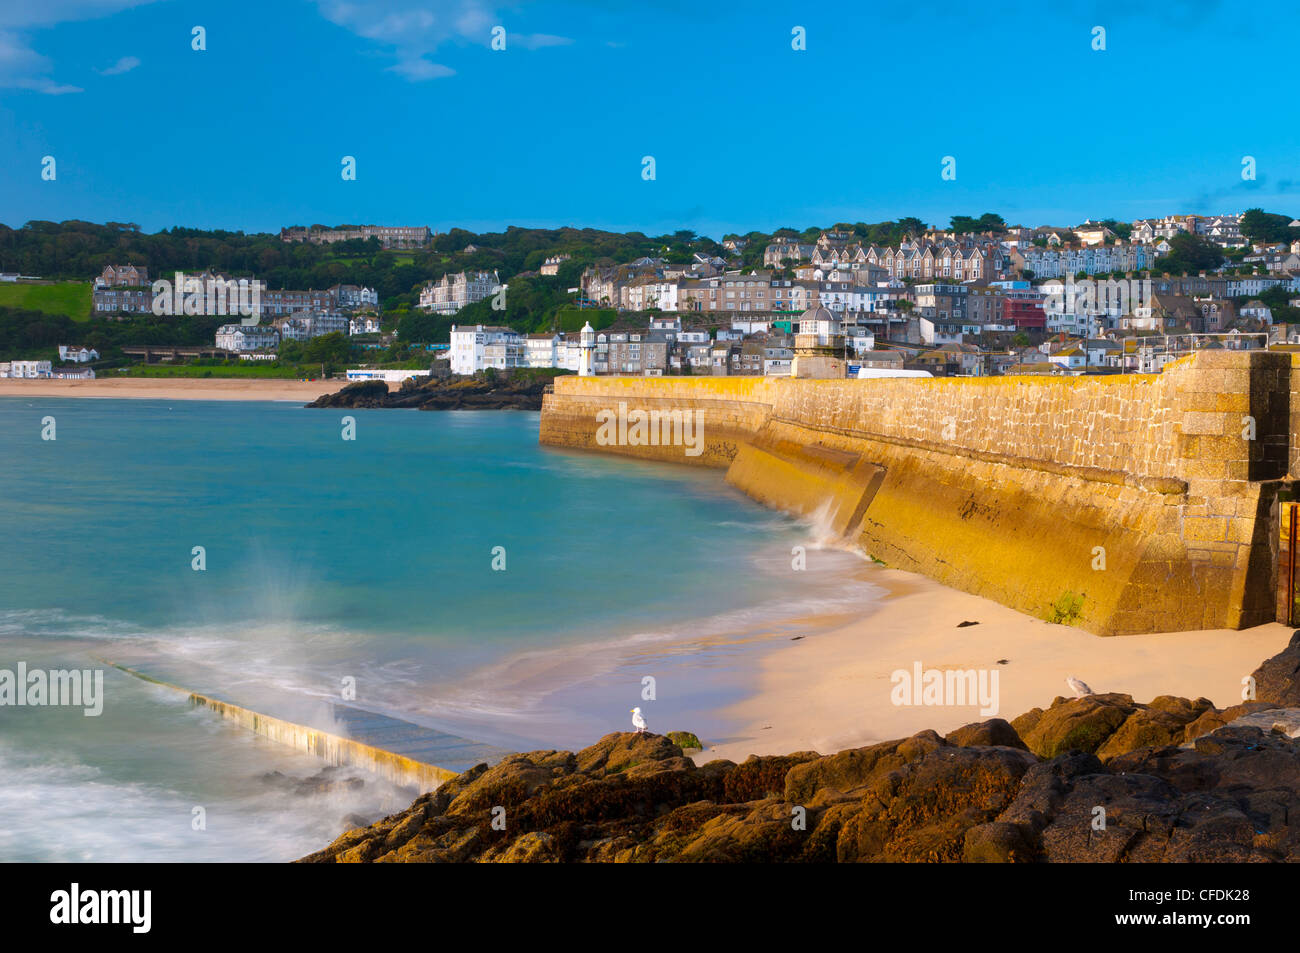 St. Ives Harbour wall, Cornwall, England, United Kingdom, Europe - Stock Image